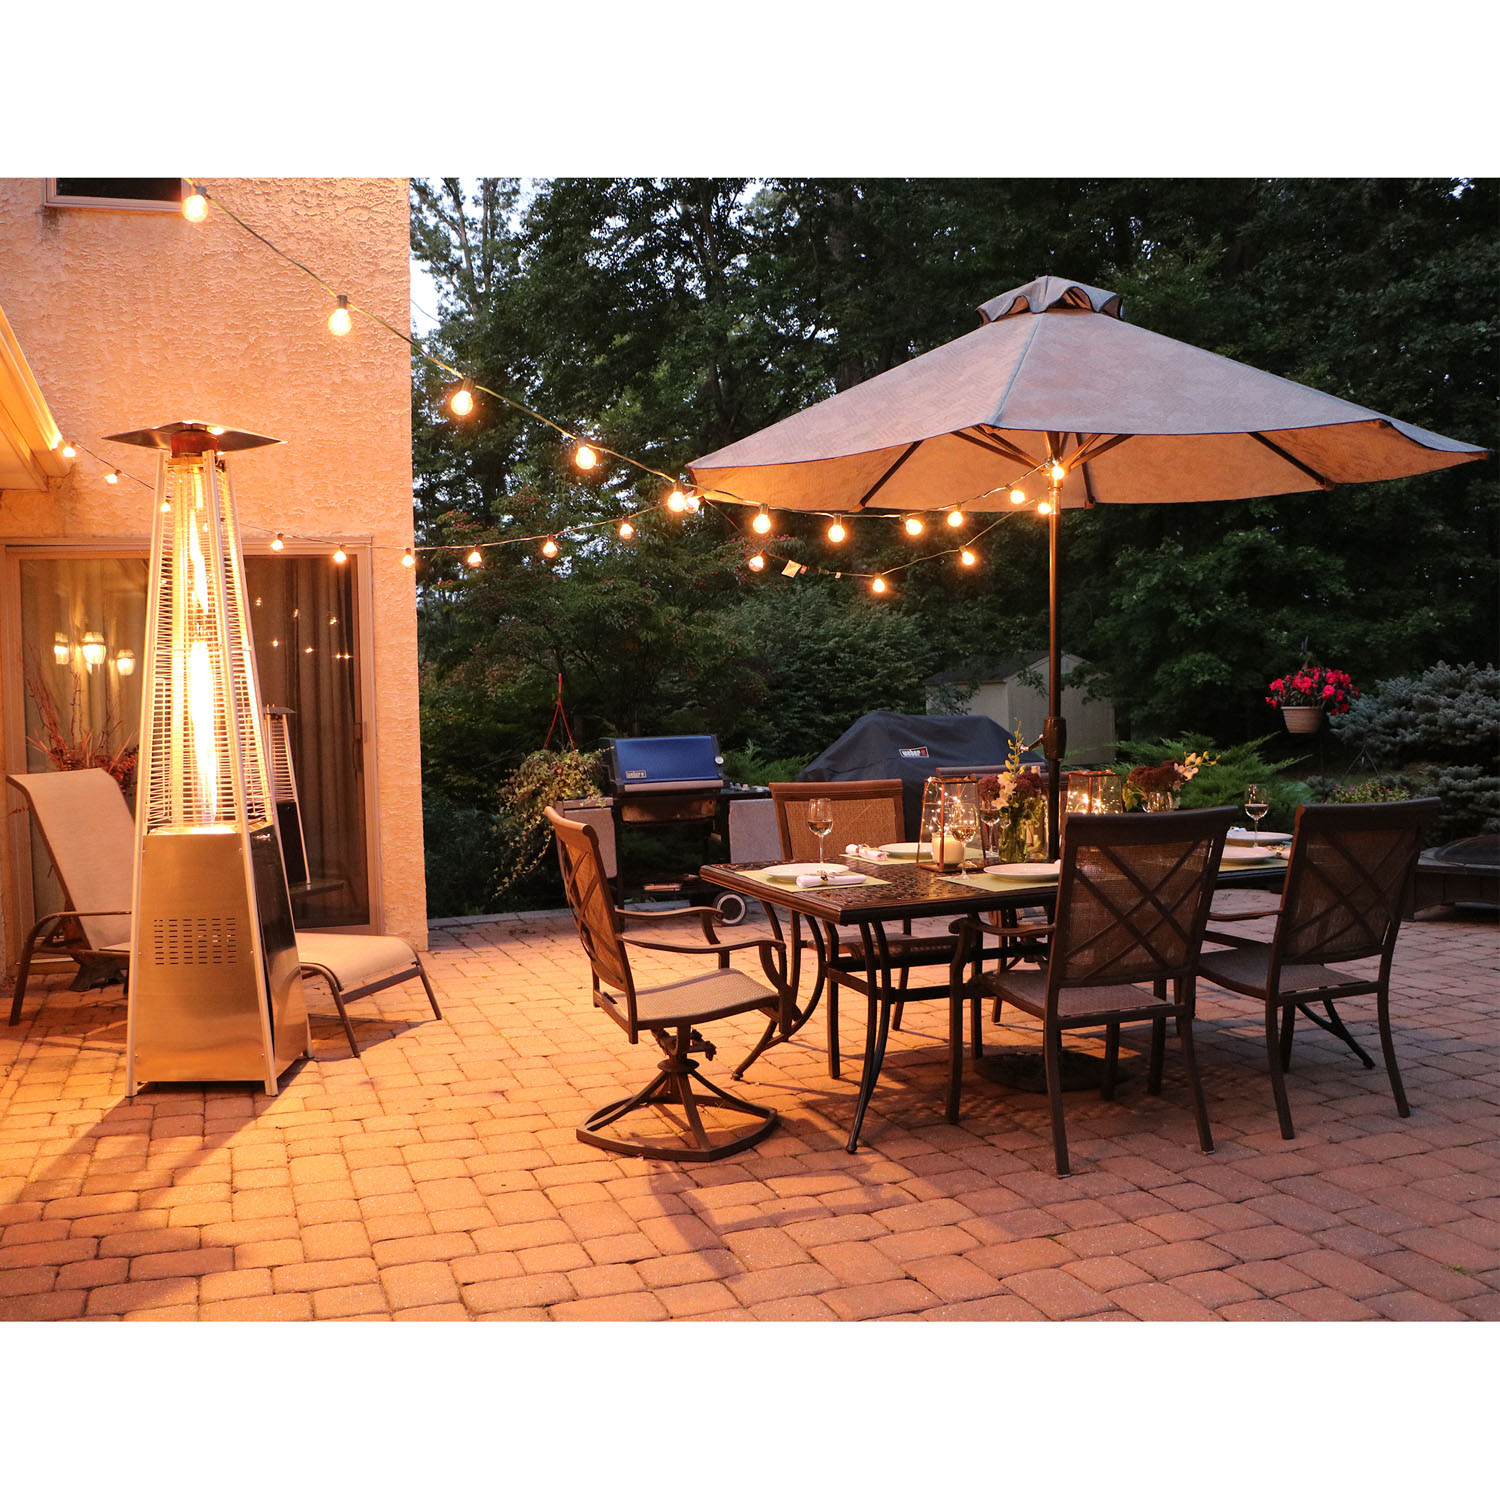 The 2019 Guide to Outdoor Patio Heaters